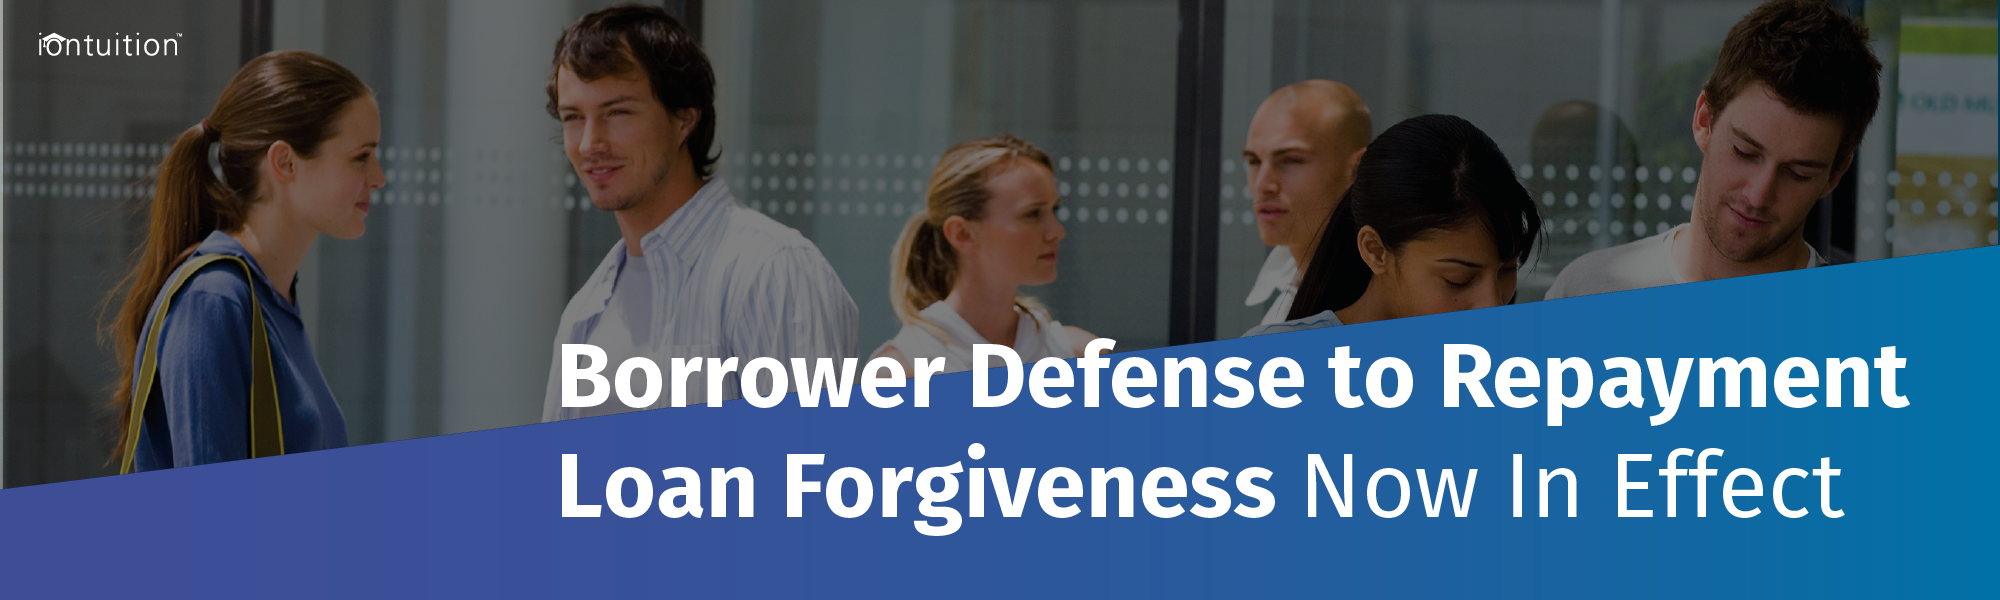 Misled Borrowers May Be Eligible for Federal Loan Forgiveness